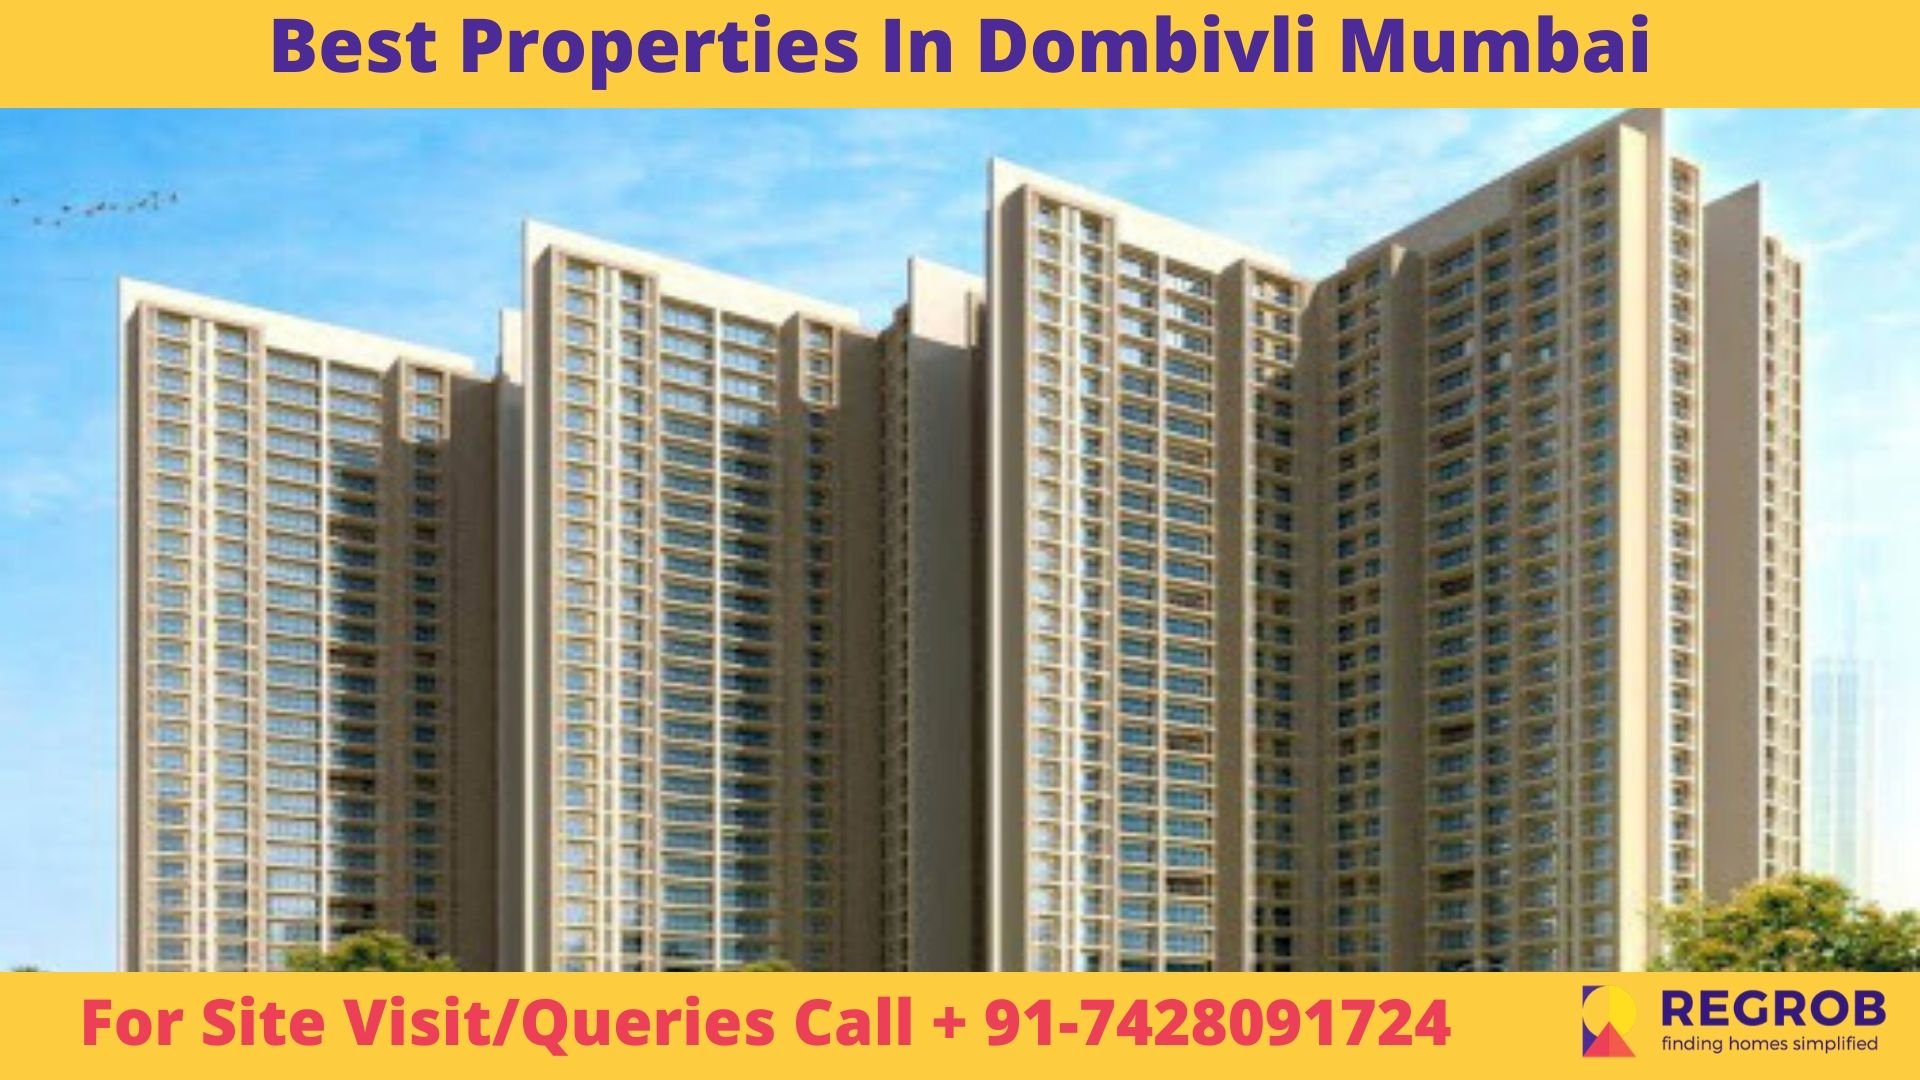 Best Properties In Dombivli Mumbai